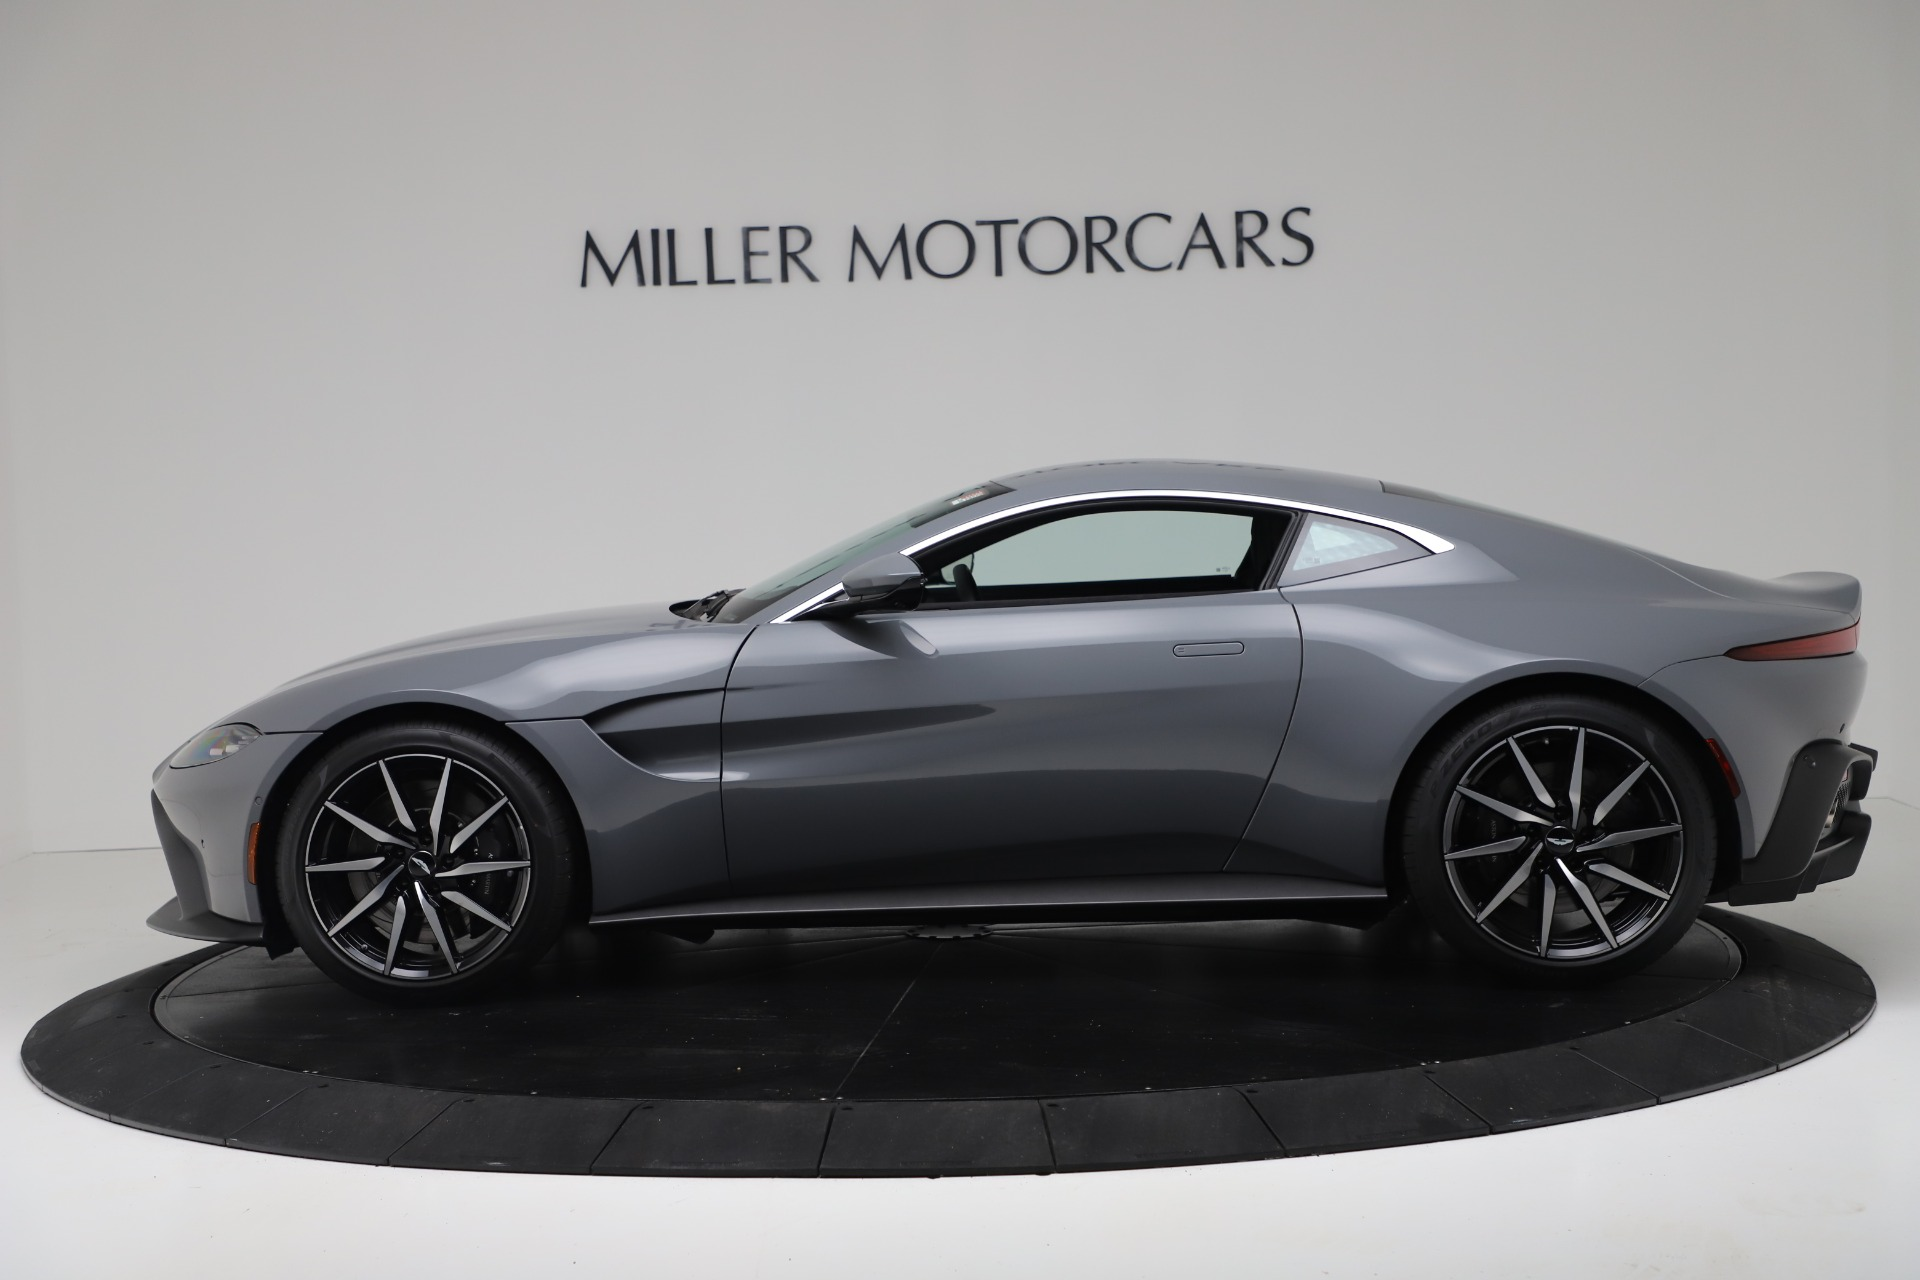 New 2020 Aston Martin Vantage V8 For Sale In Greenwich, CT 3368_p2